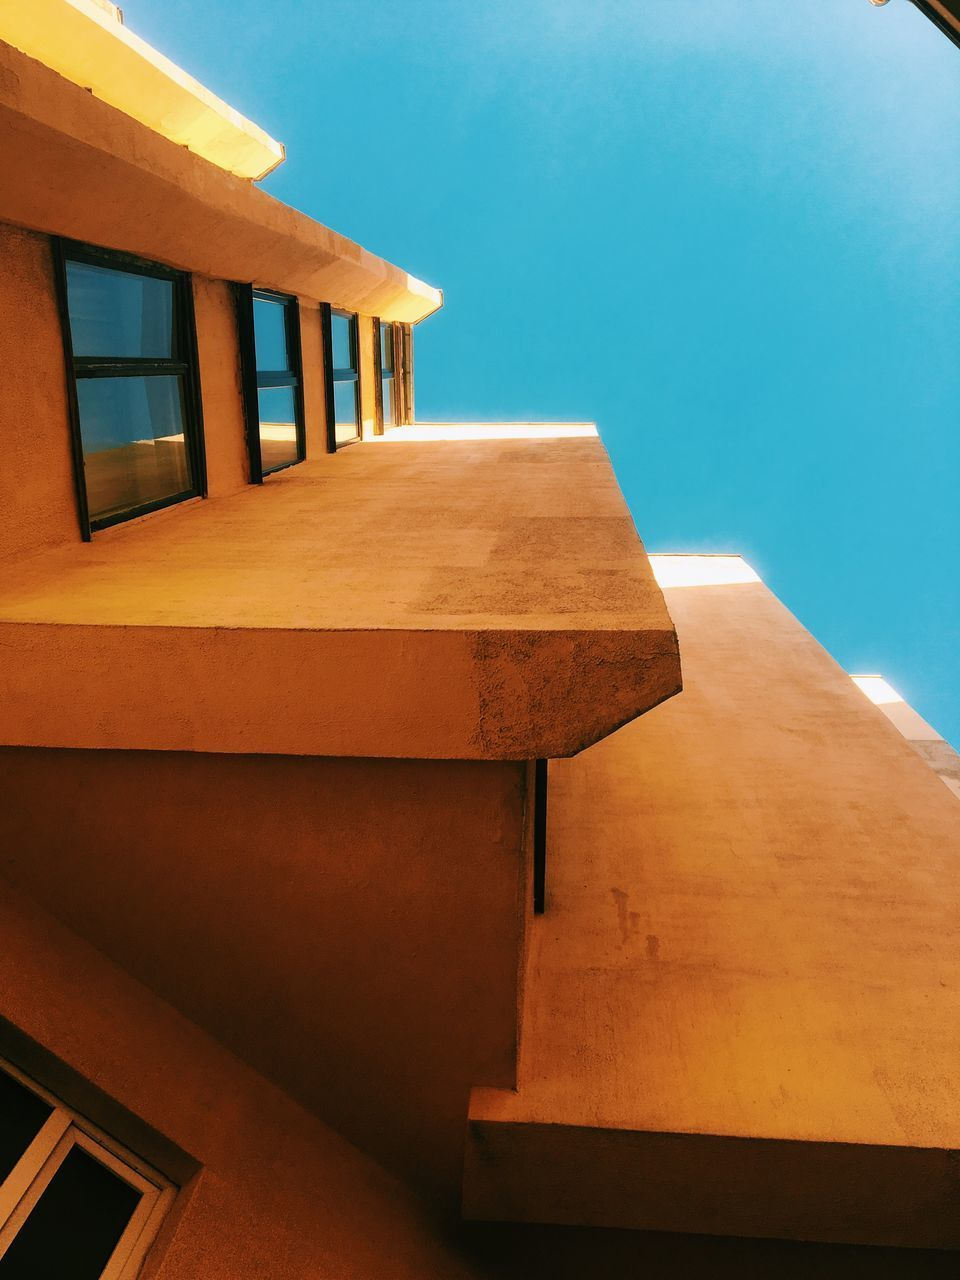 architecture, built structure, no people, sky, clear sky, nature, day, sunlight, building exterior, blue, building, outdoors, low angle view, wood - material, roof, close-up, staircase, copy space, water, pattern